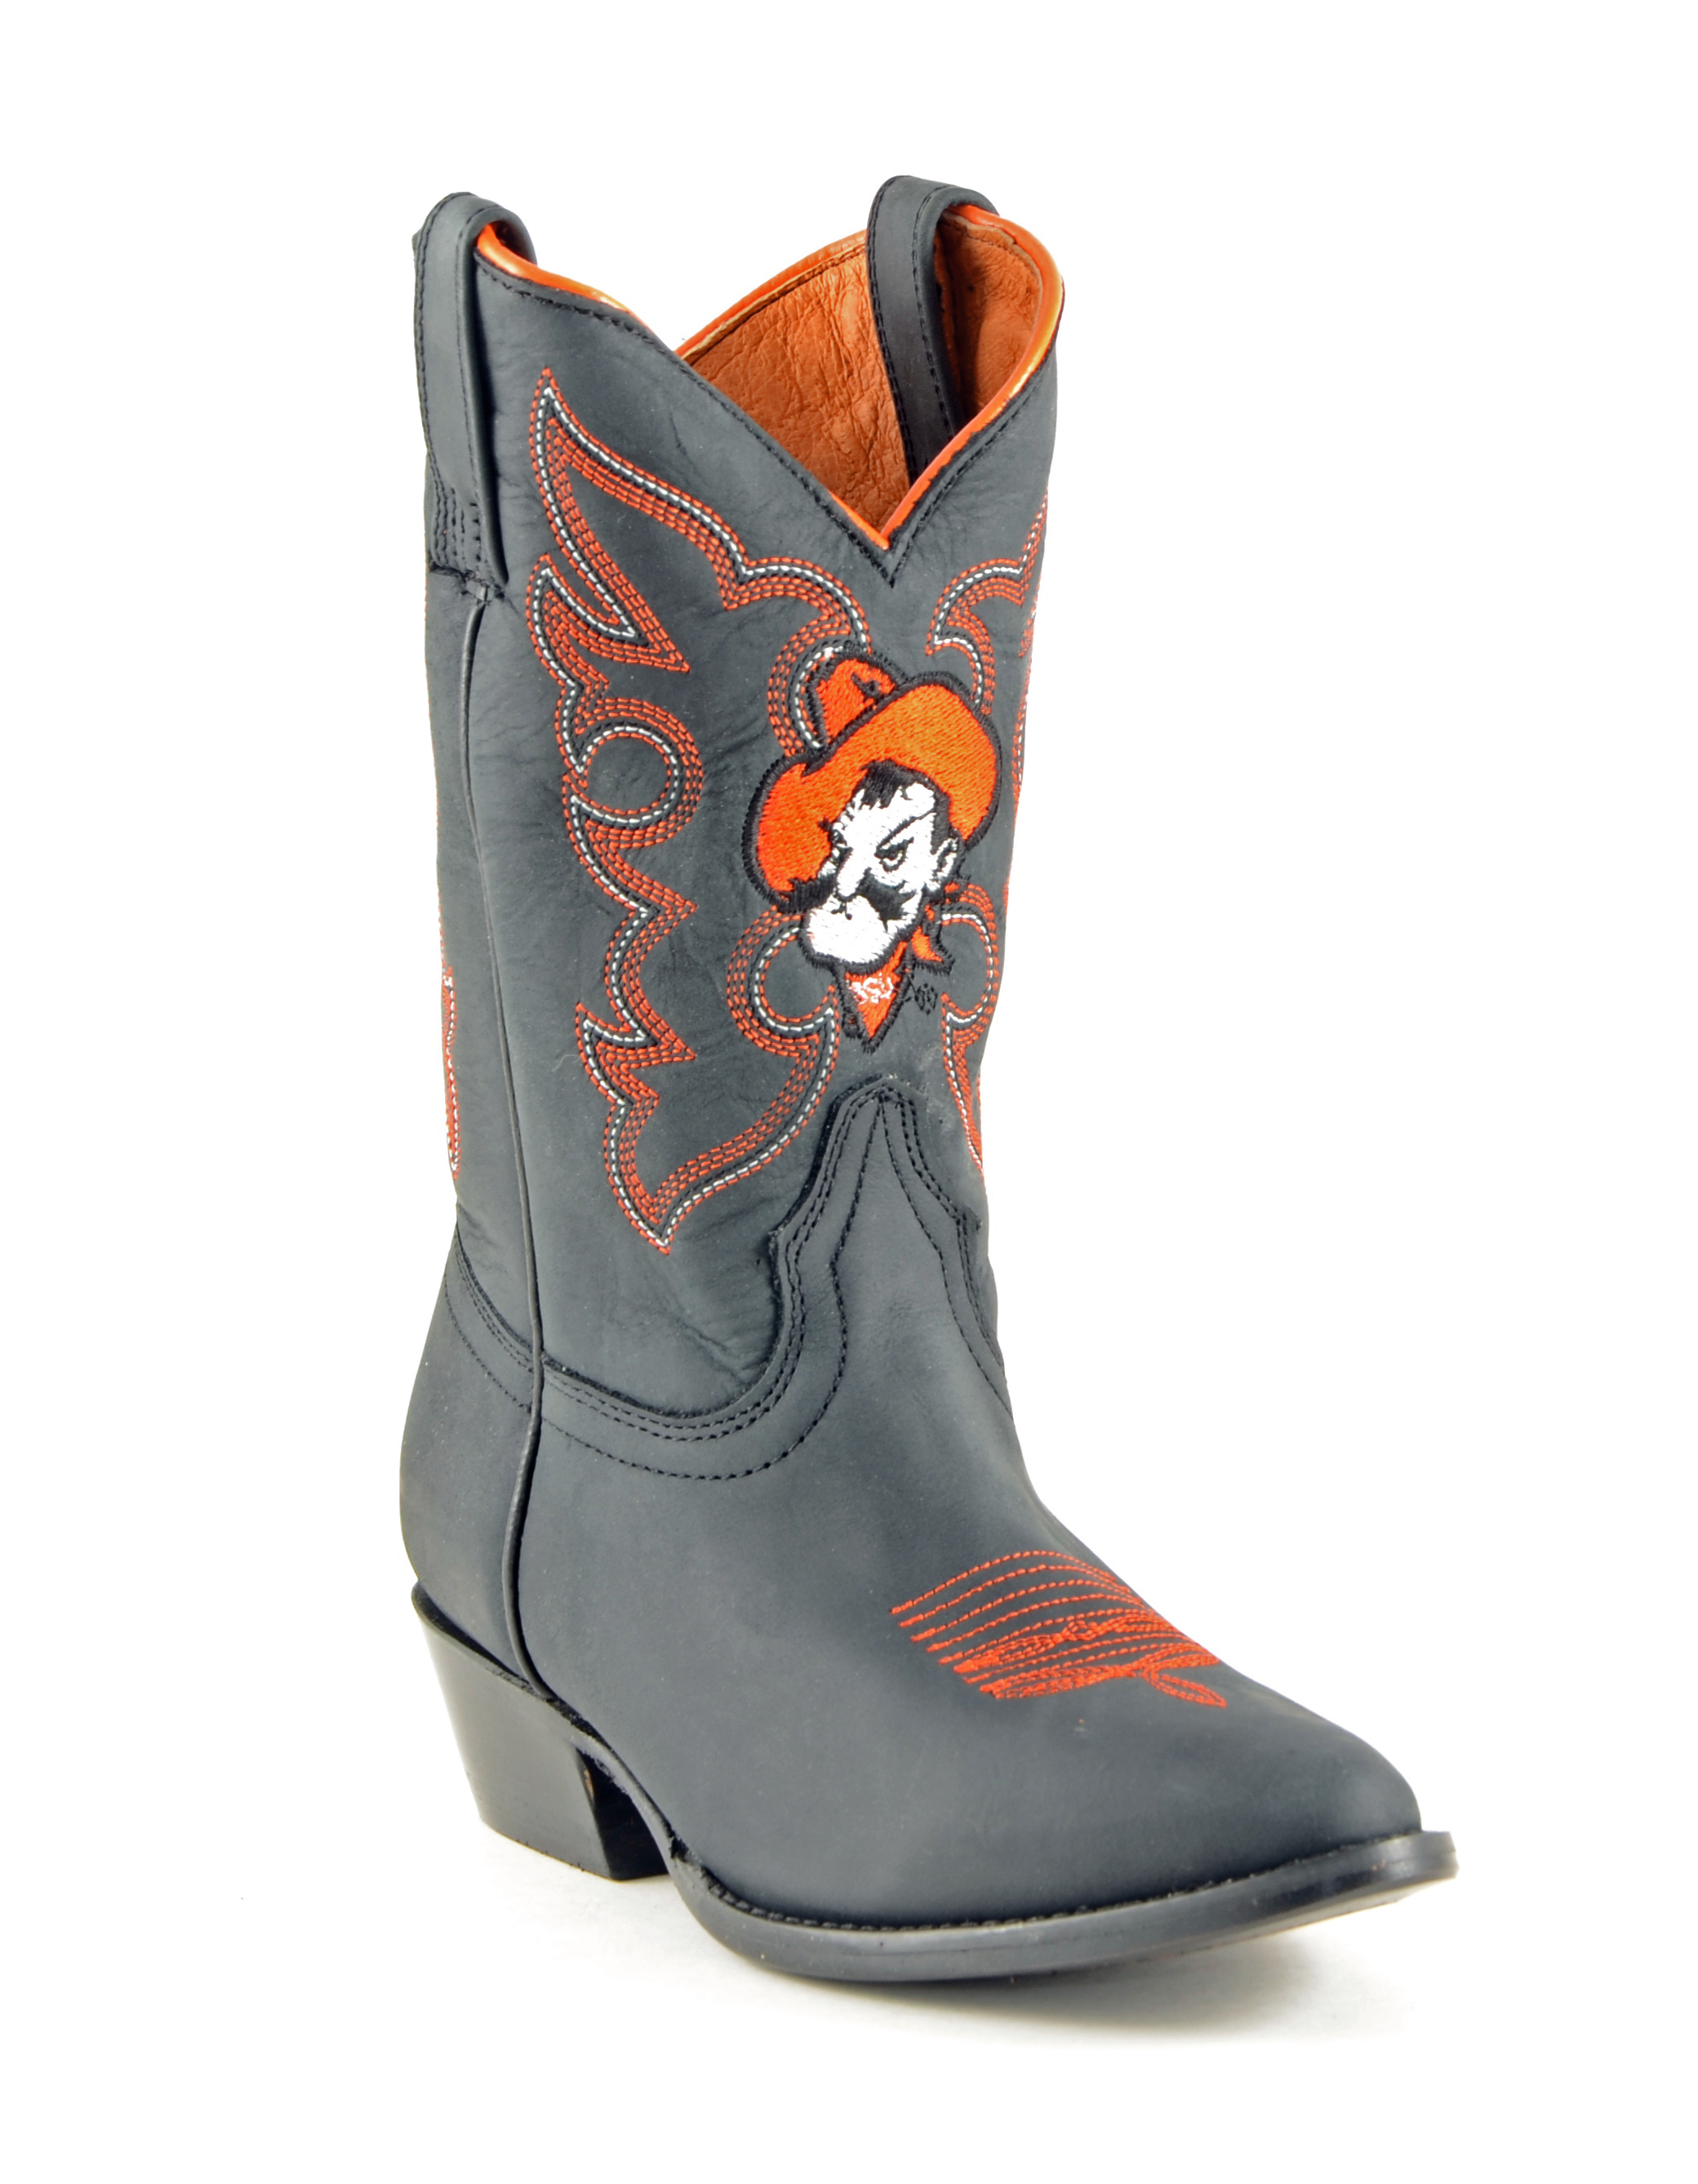 Gameday New Boys Honey Leather Oklahoma State Embroidered Cowboy Boots by GameDay Boots